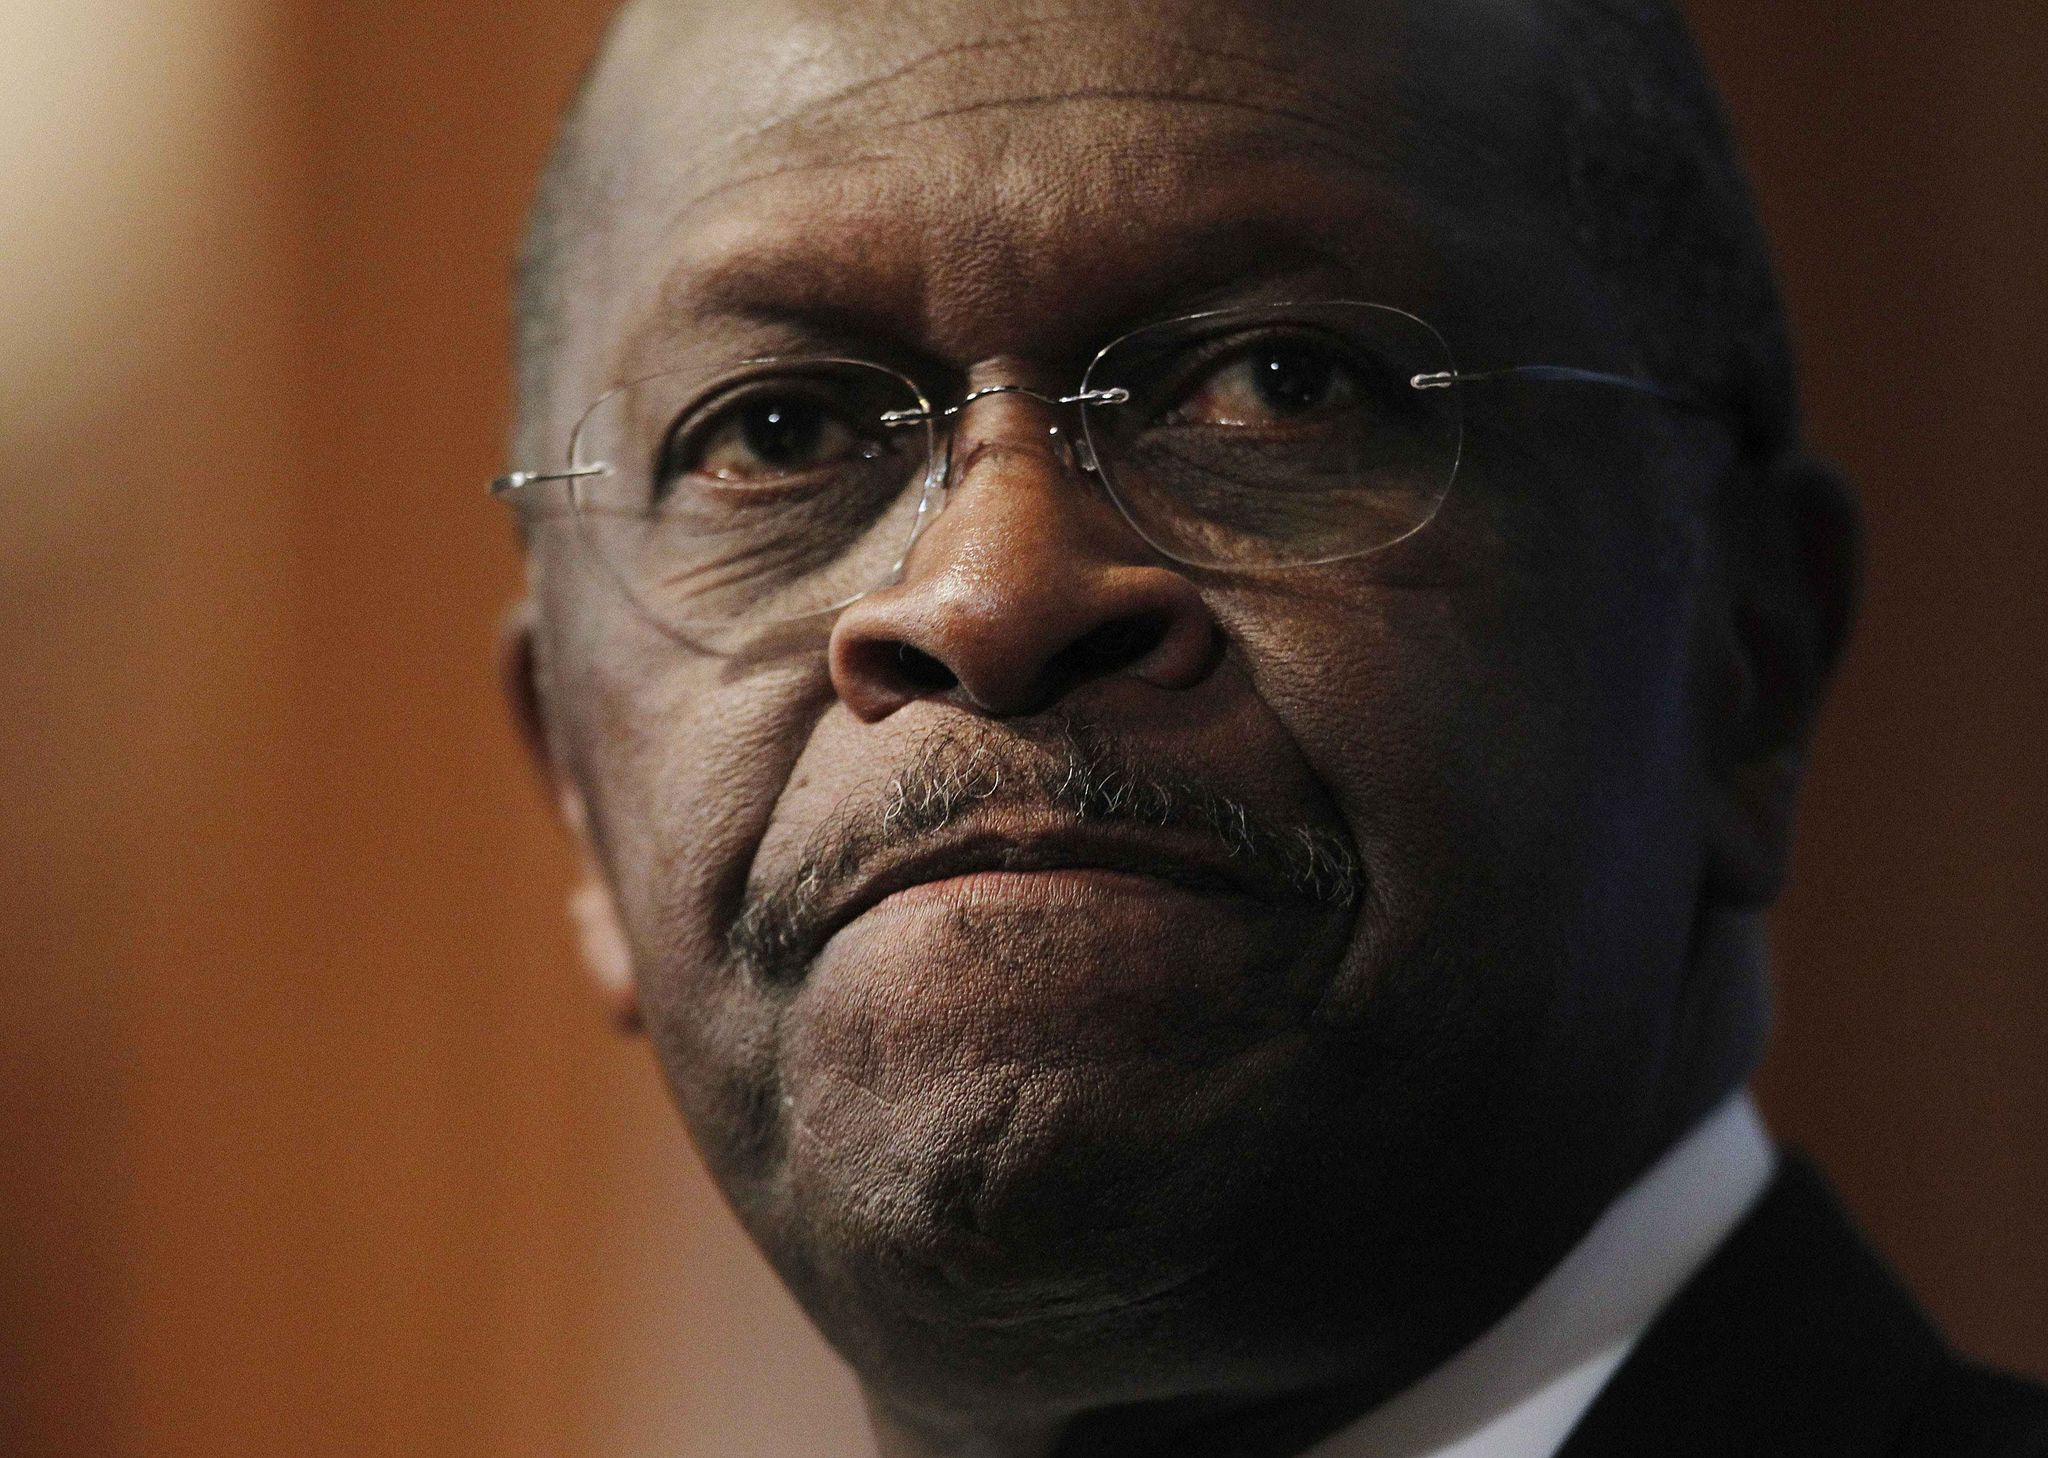 Herman Cain: Dropping Fed nomination 'had nothing to do' with sexual misconduct accusations